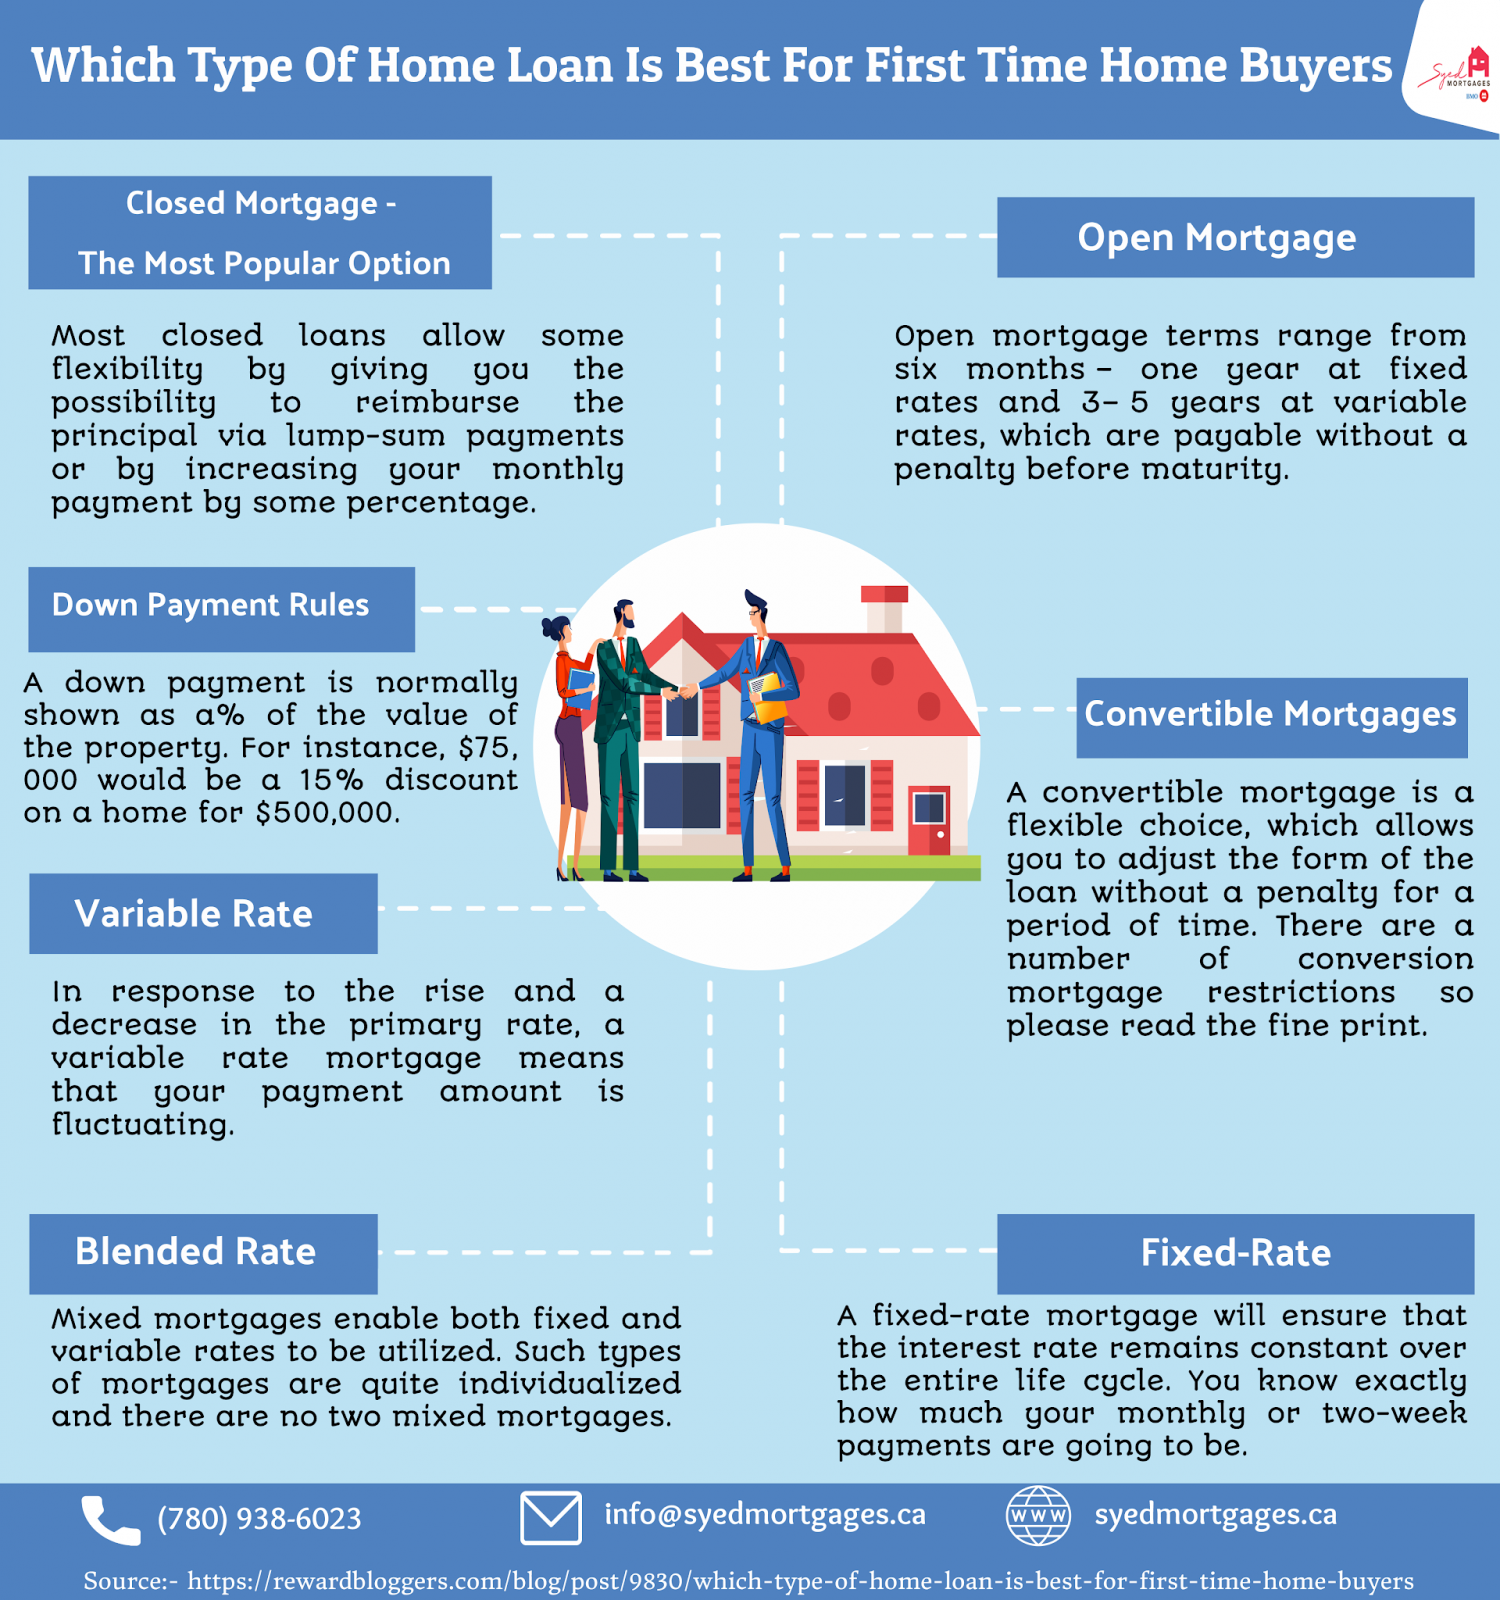 Which Type OfWhich Type Of Home Loan Is Best For First Time Home Buyers Home Loan Is Best For First Time Home Buyers Infographic